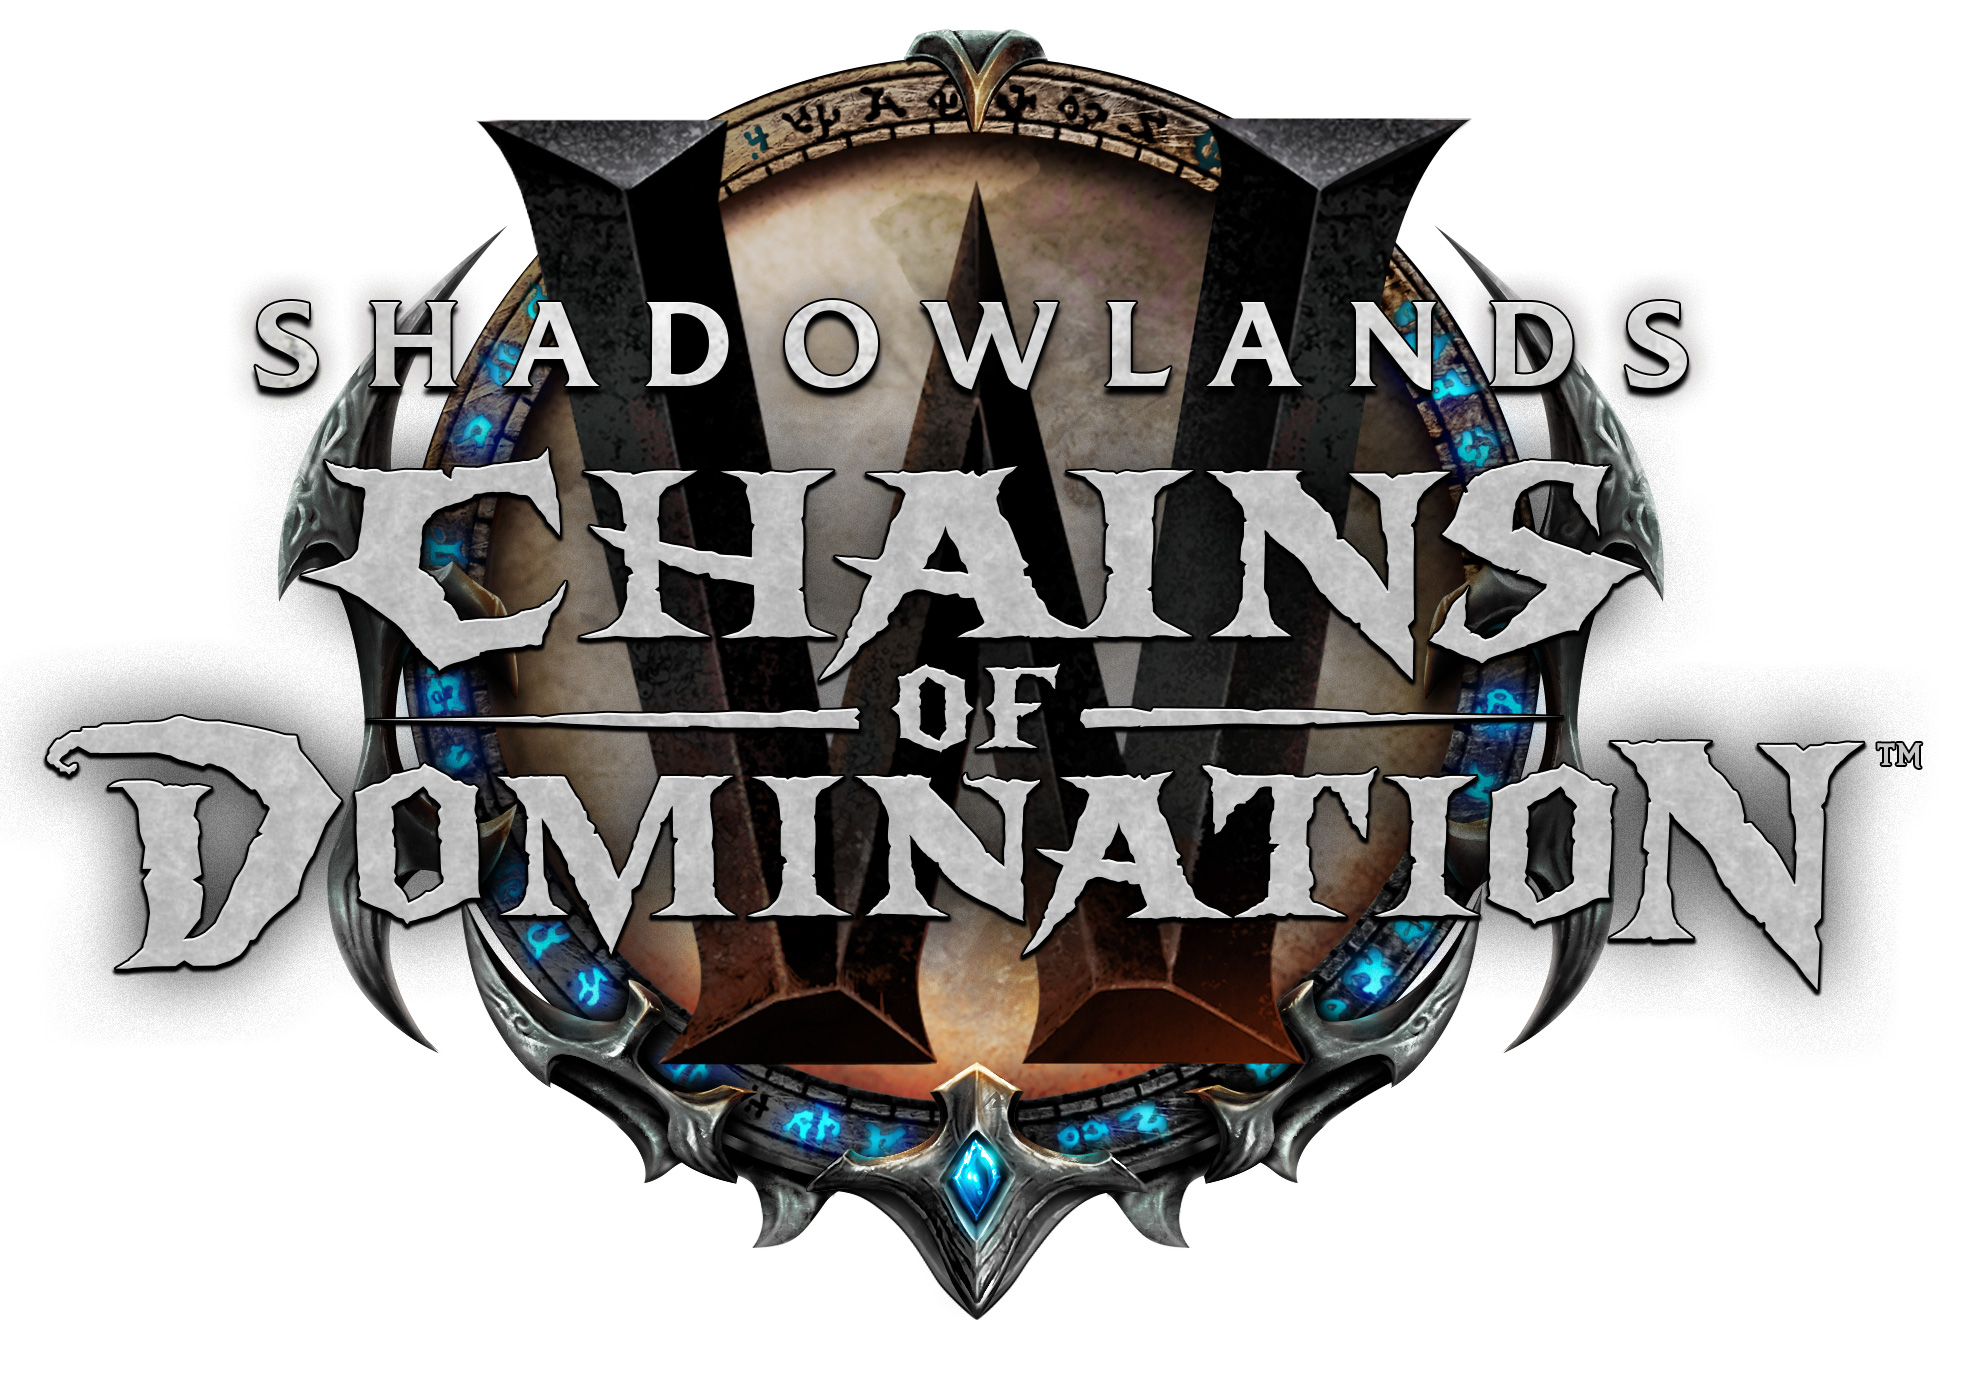 https://media.mmo-champion.com/images/news/2021/february/shadowlandsChains.jpg